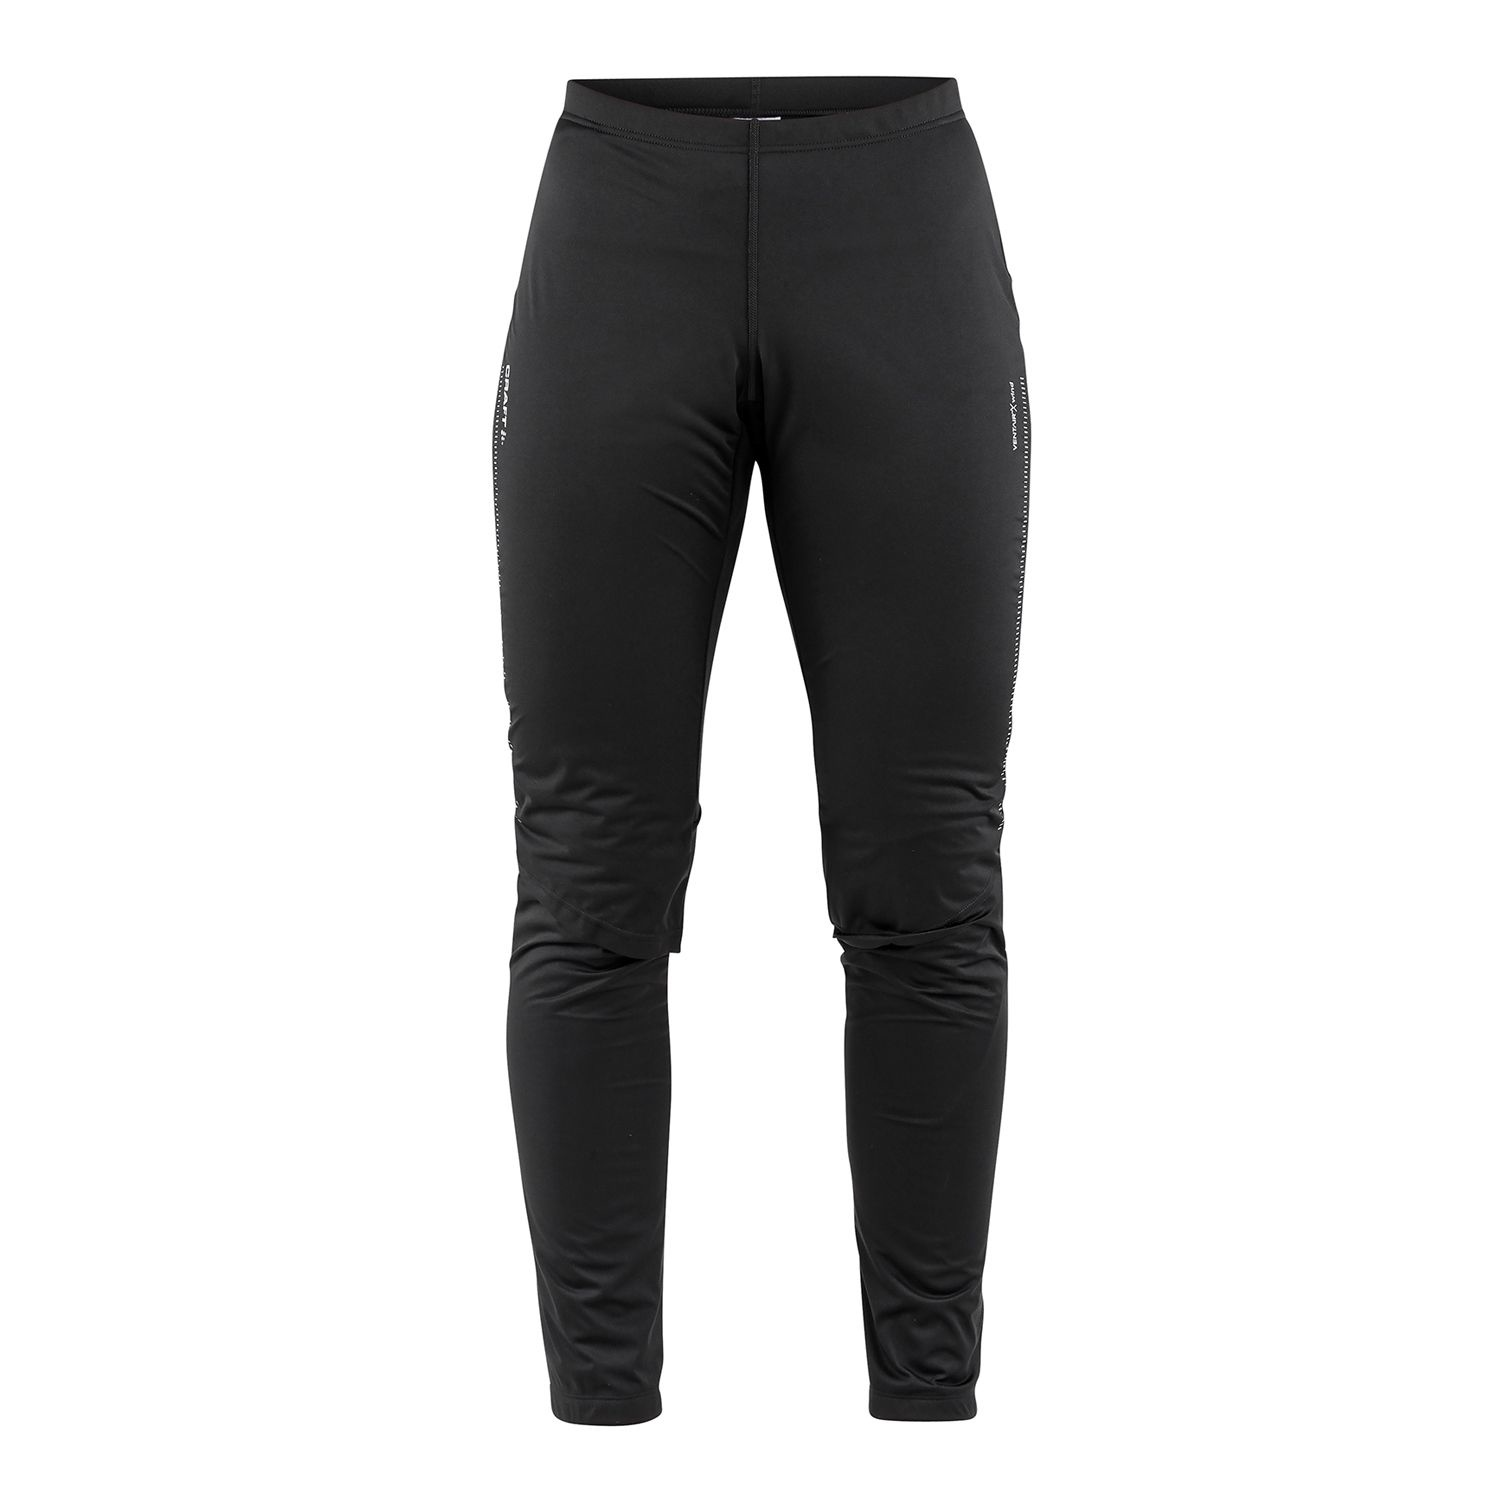 Craft Women's Storm Balance Tight